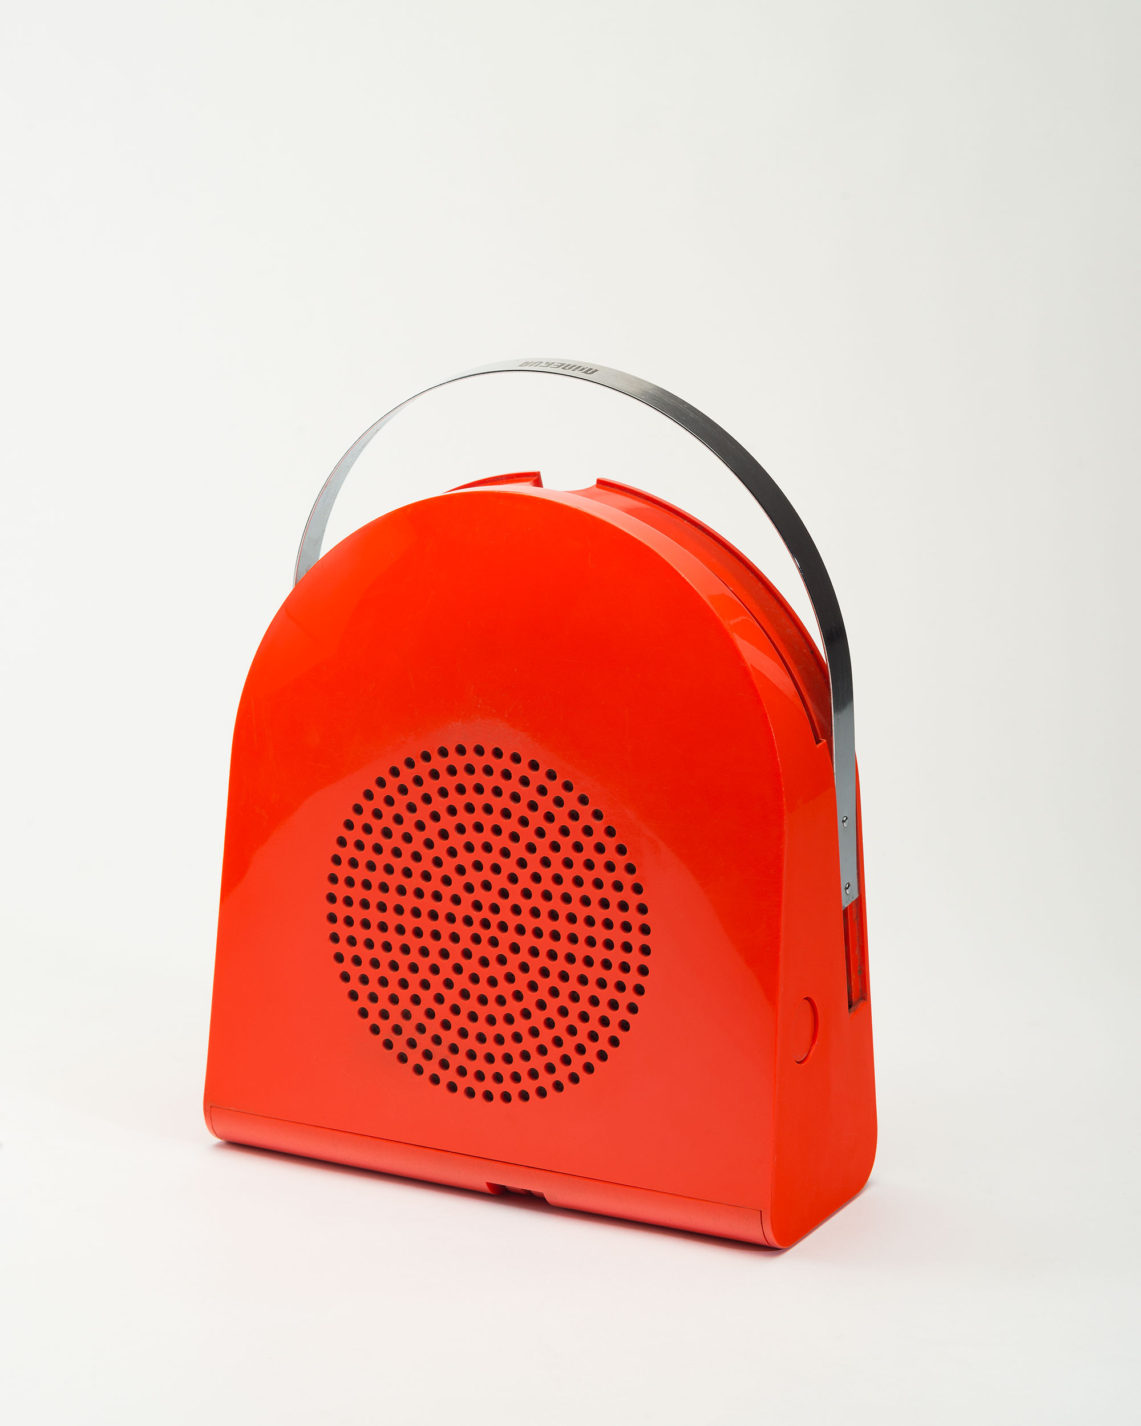 Arched portable record player in red plastic with retractable conforming steel handle at the top. Circular perforated section in the center for speaker.